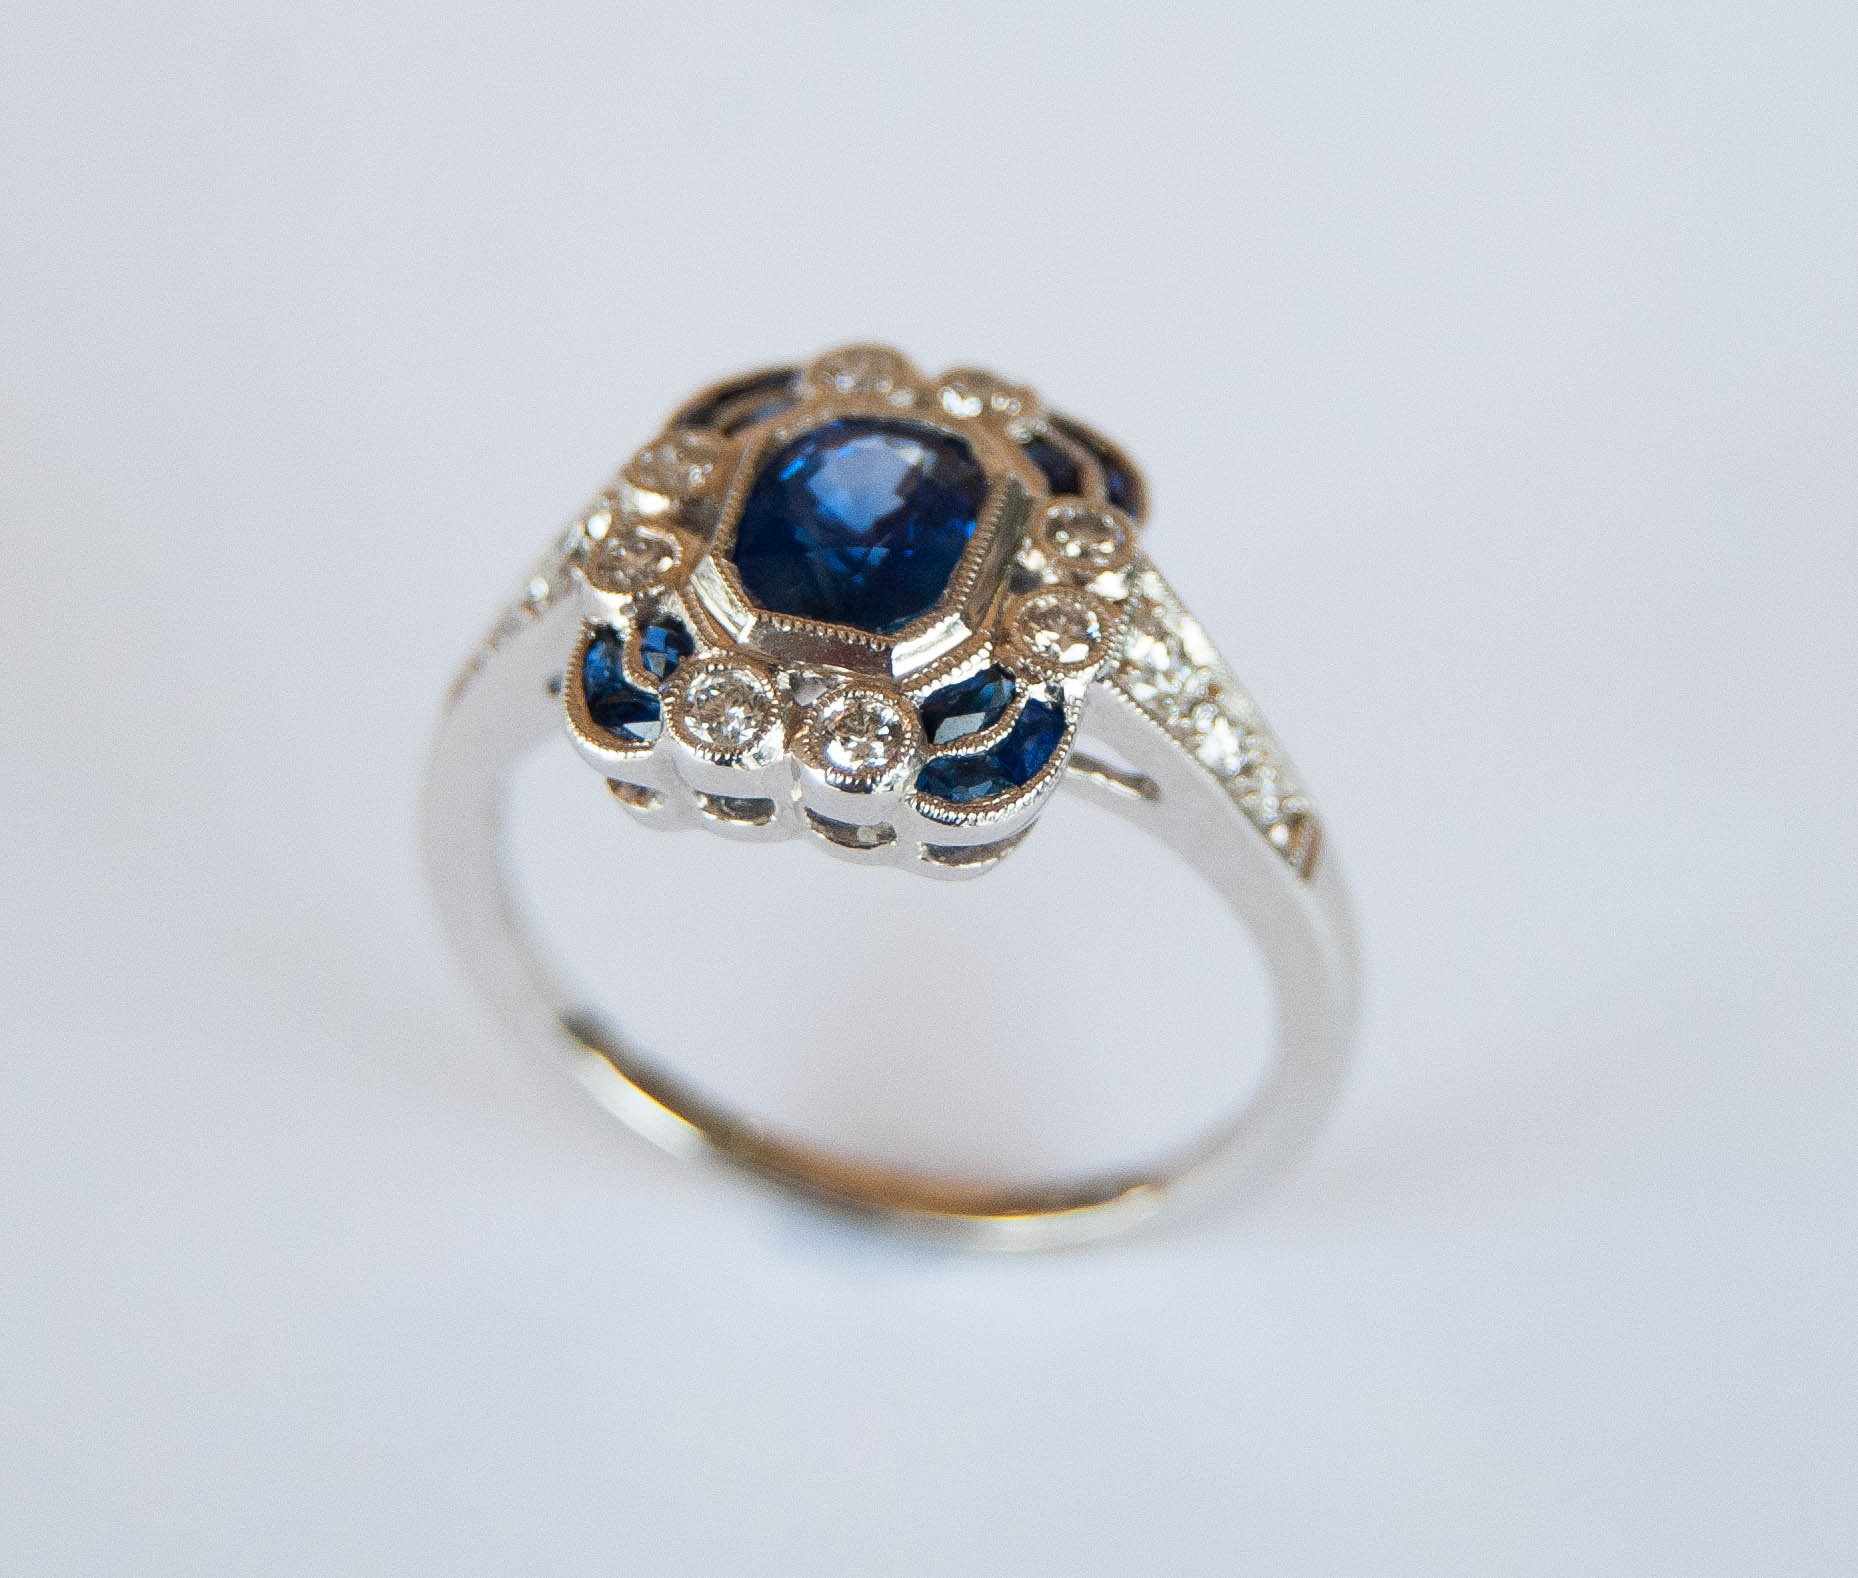 200-855   18 Karat white gold Vintage Style Fashion Ring With 1.18Tw Various Shapes Sapphires And 0.33Tw Round Diamonds $3,738.00